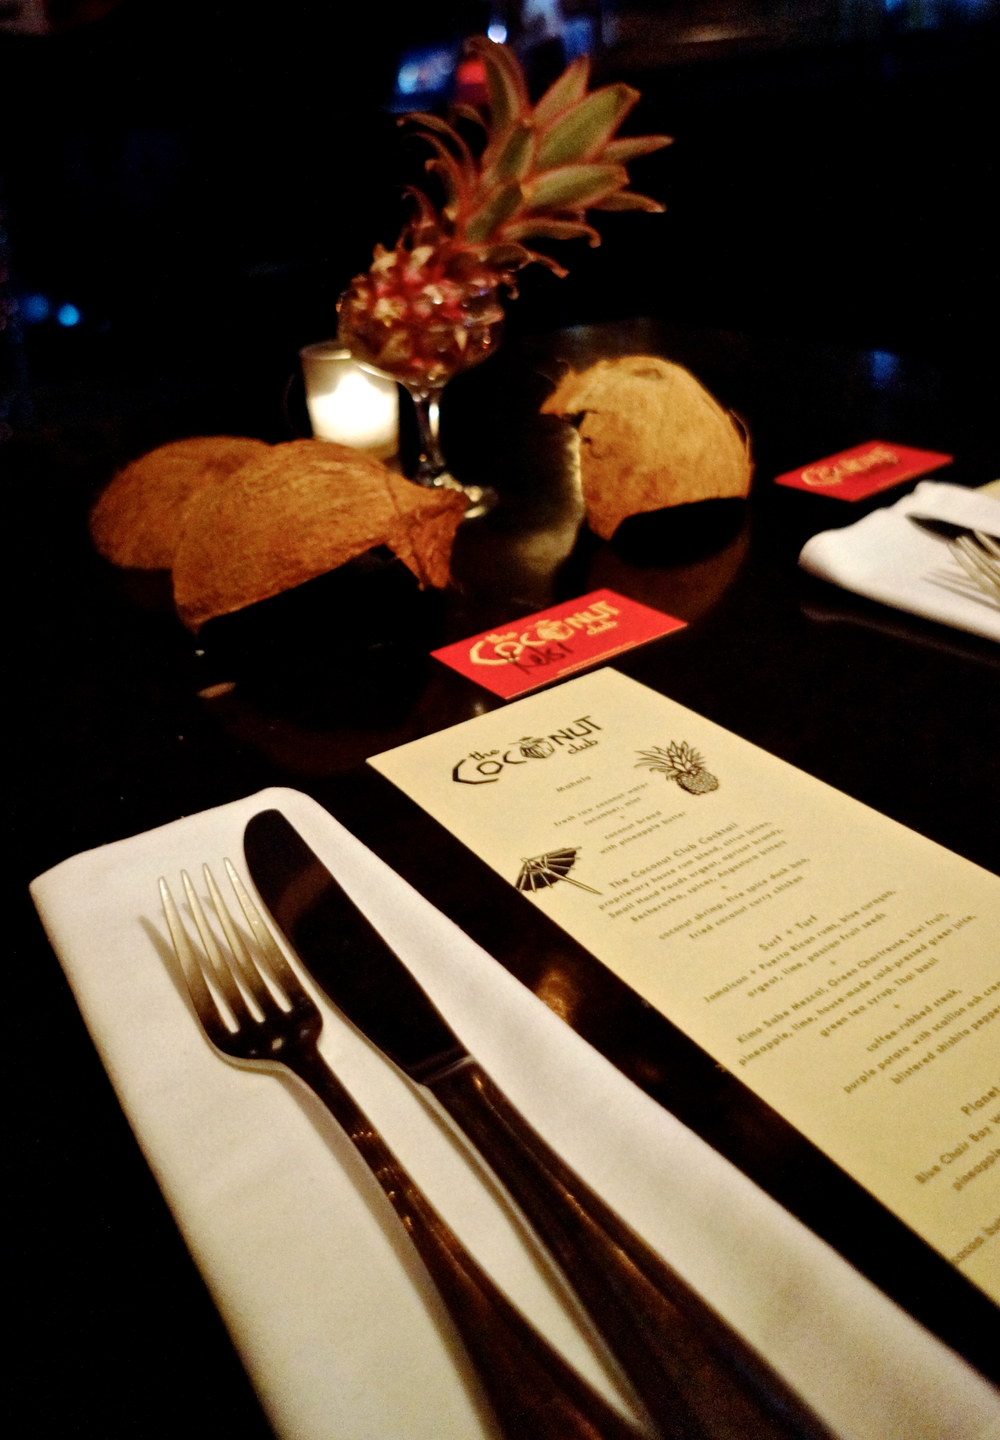 coconut-club-menu-table.jpg